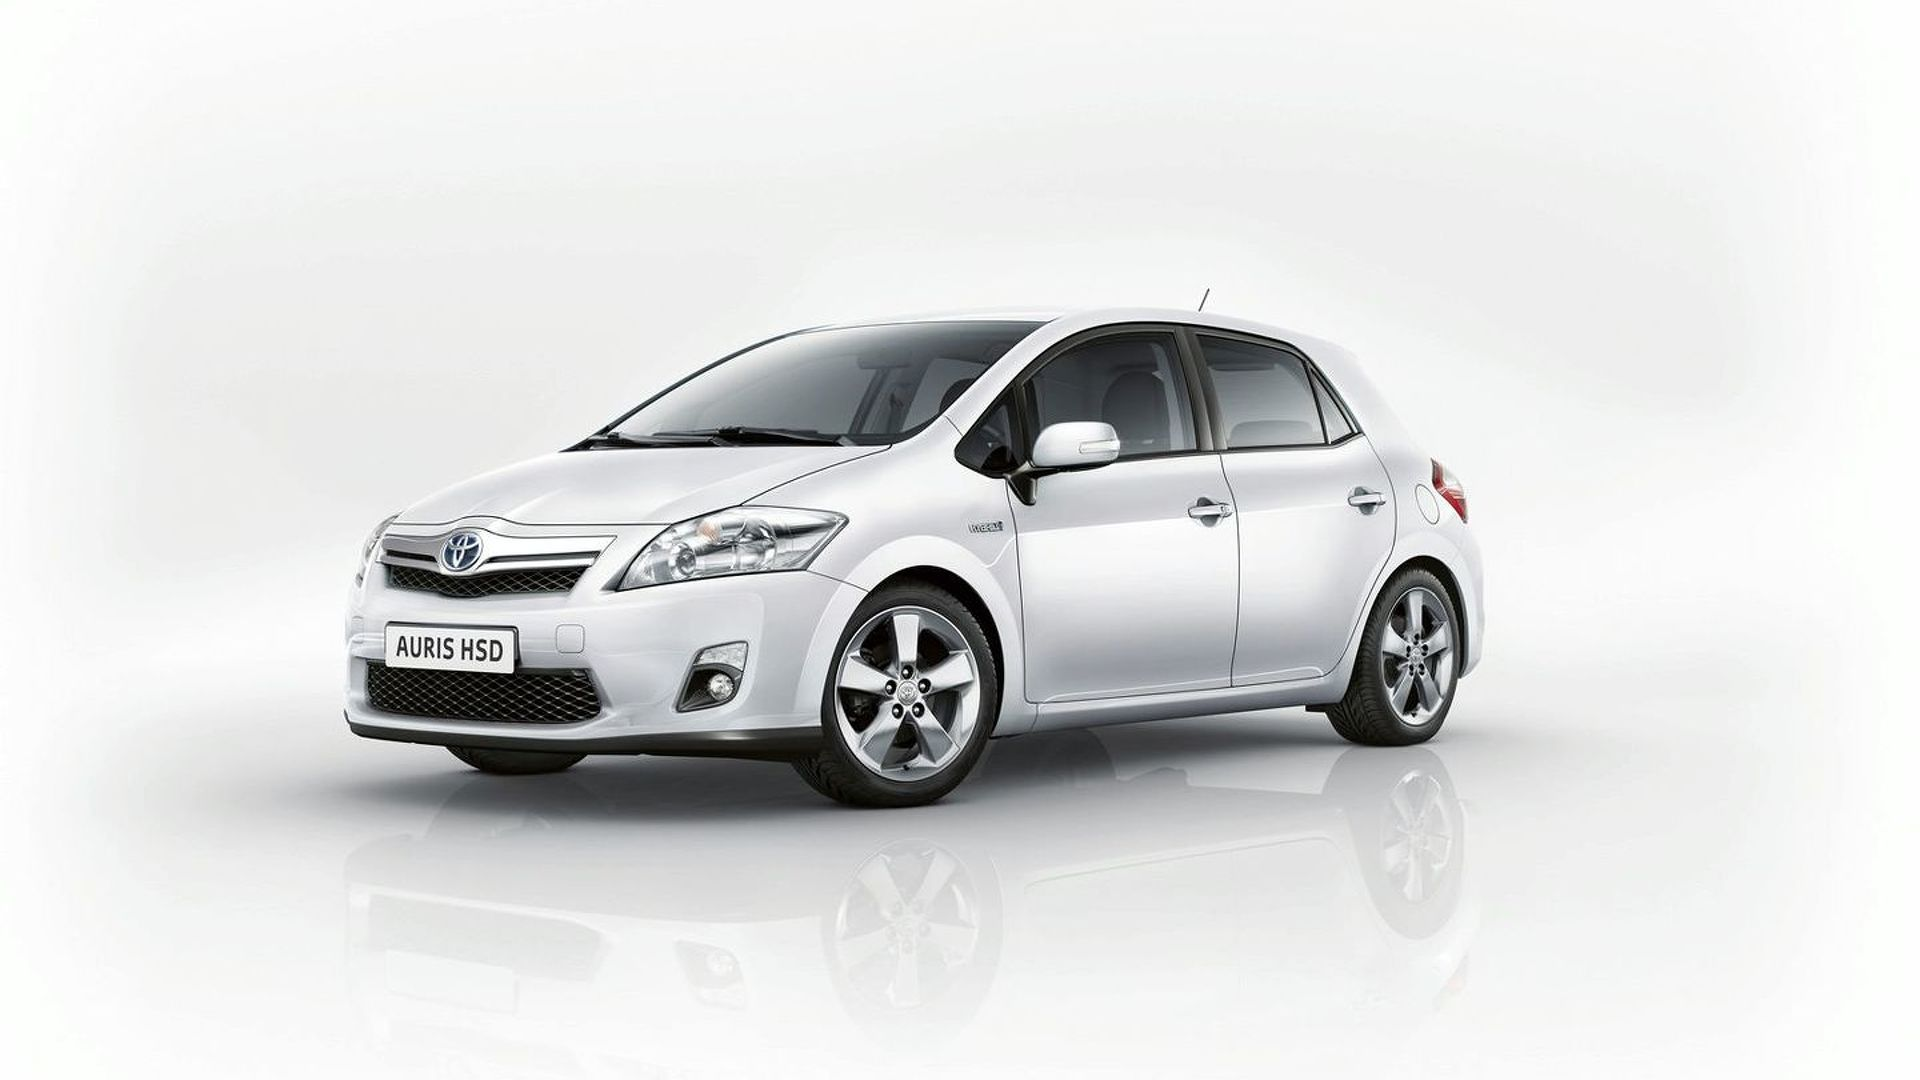 Full Production Toyota Auris HSD World Debut [Video]